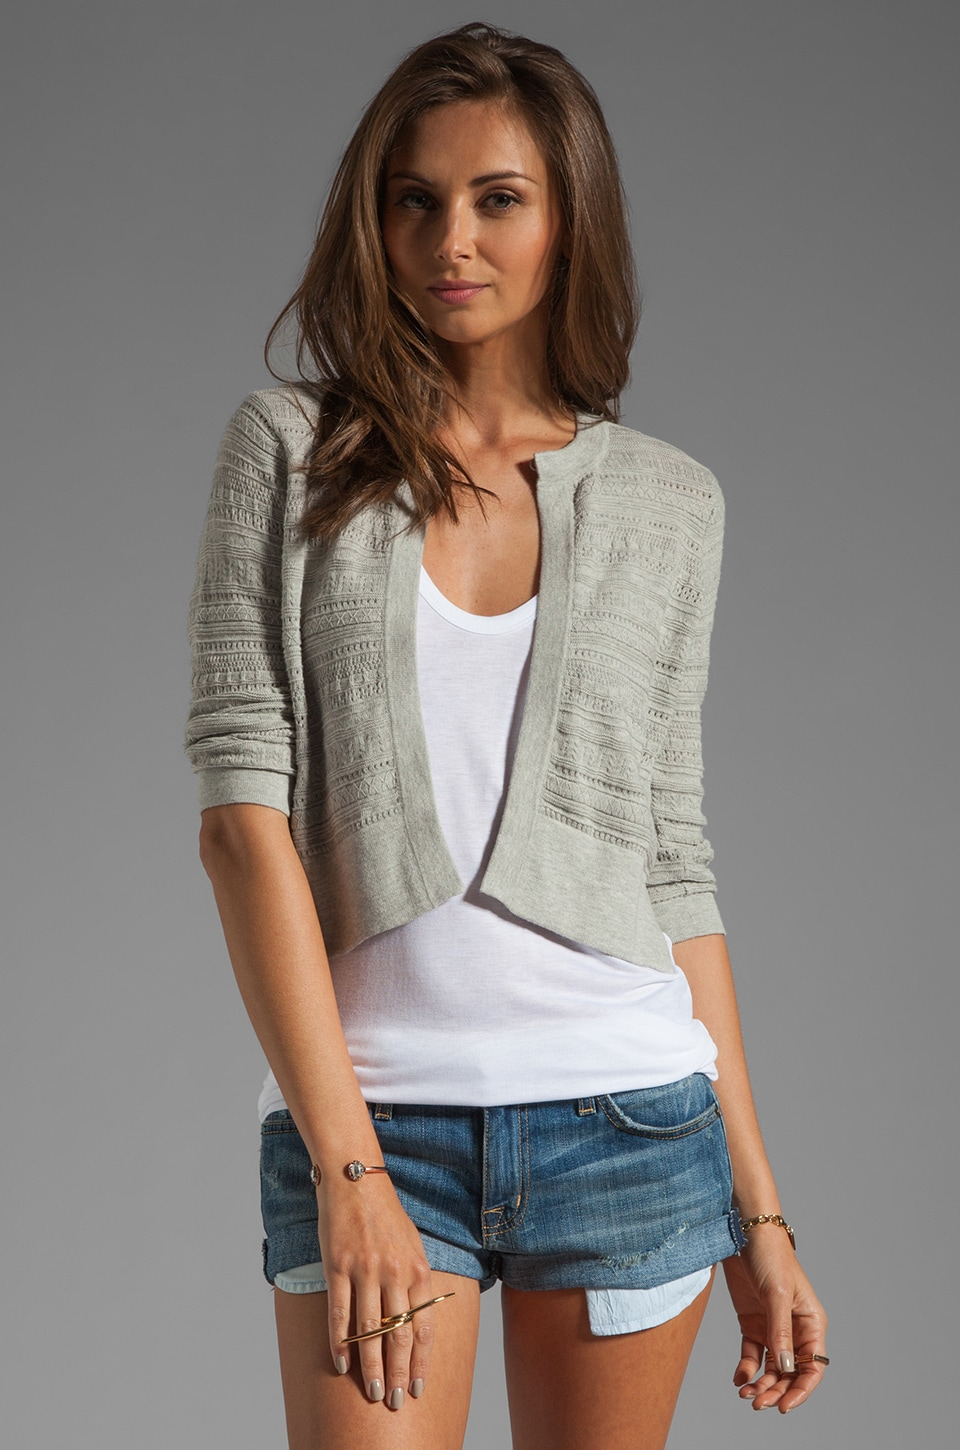 Autumn Cashmere Multi Stitch Open Cardigan in Cinderblock